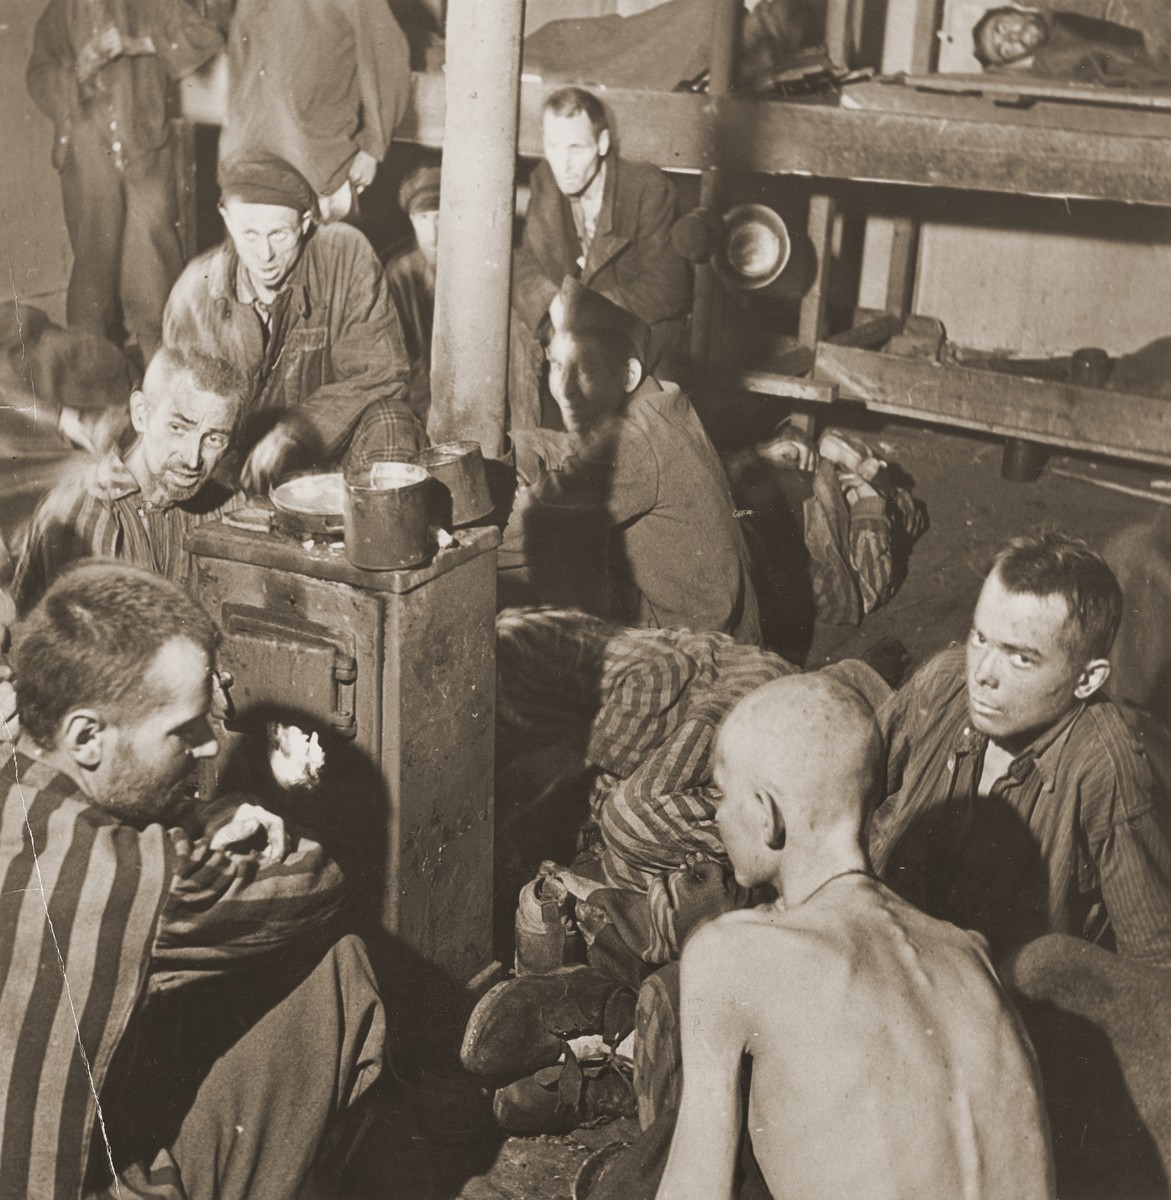 Allied POWs in a barracks in Stalag XB at Sandbostel near Zeven.  The camp was liberated by units of the British Guards Armored Division.